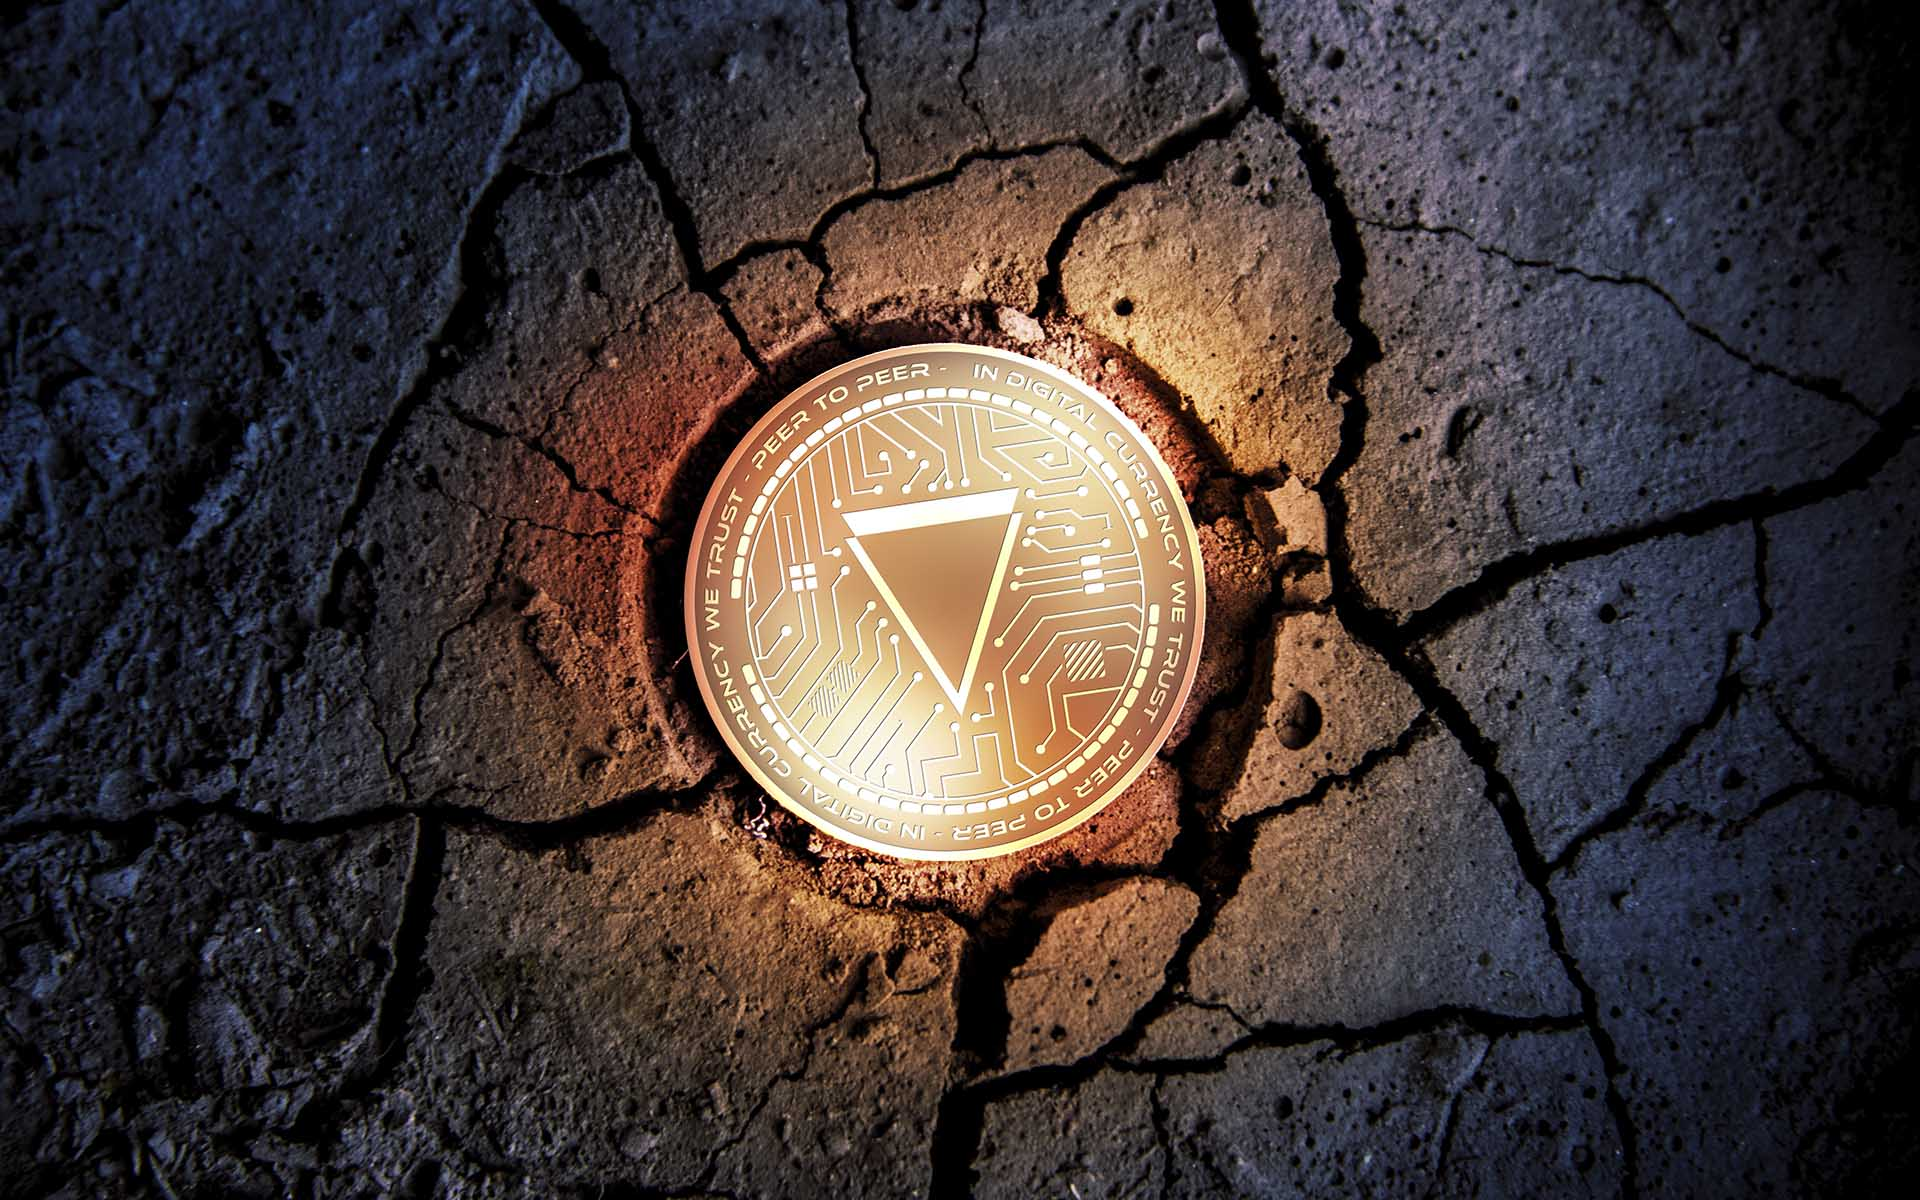 Verge (XVG) Hacked Again, 35 Million XVG Tokens Reportedly Generated by Hacker